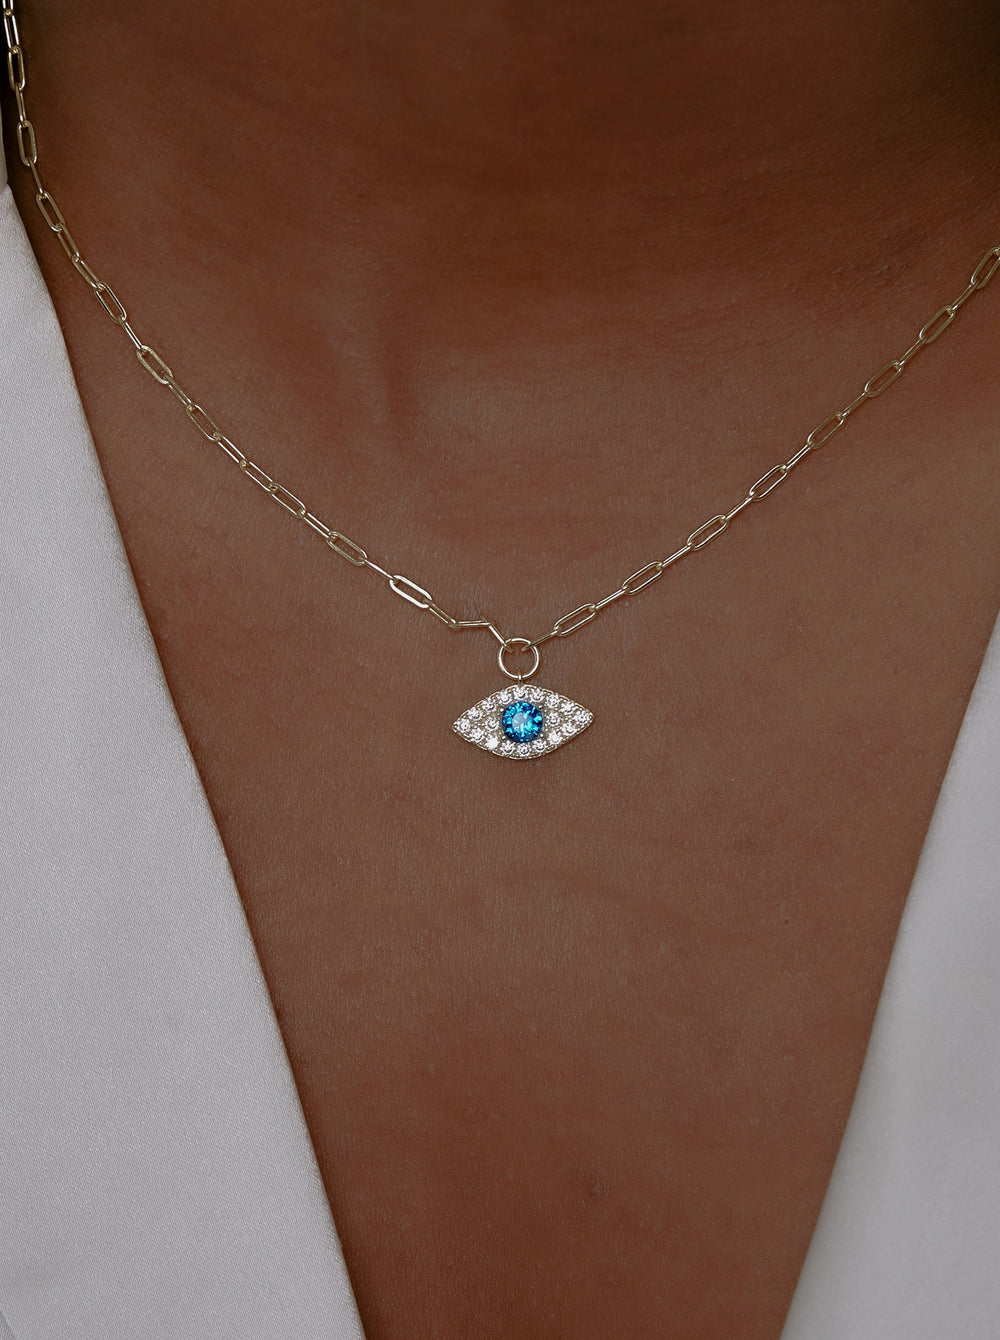 THE PAVE EVIL EYE REDA LINK PENDANT NECKLACE